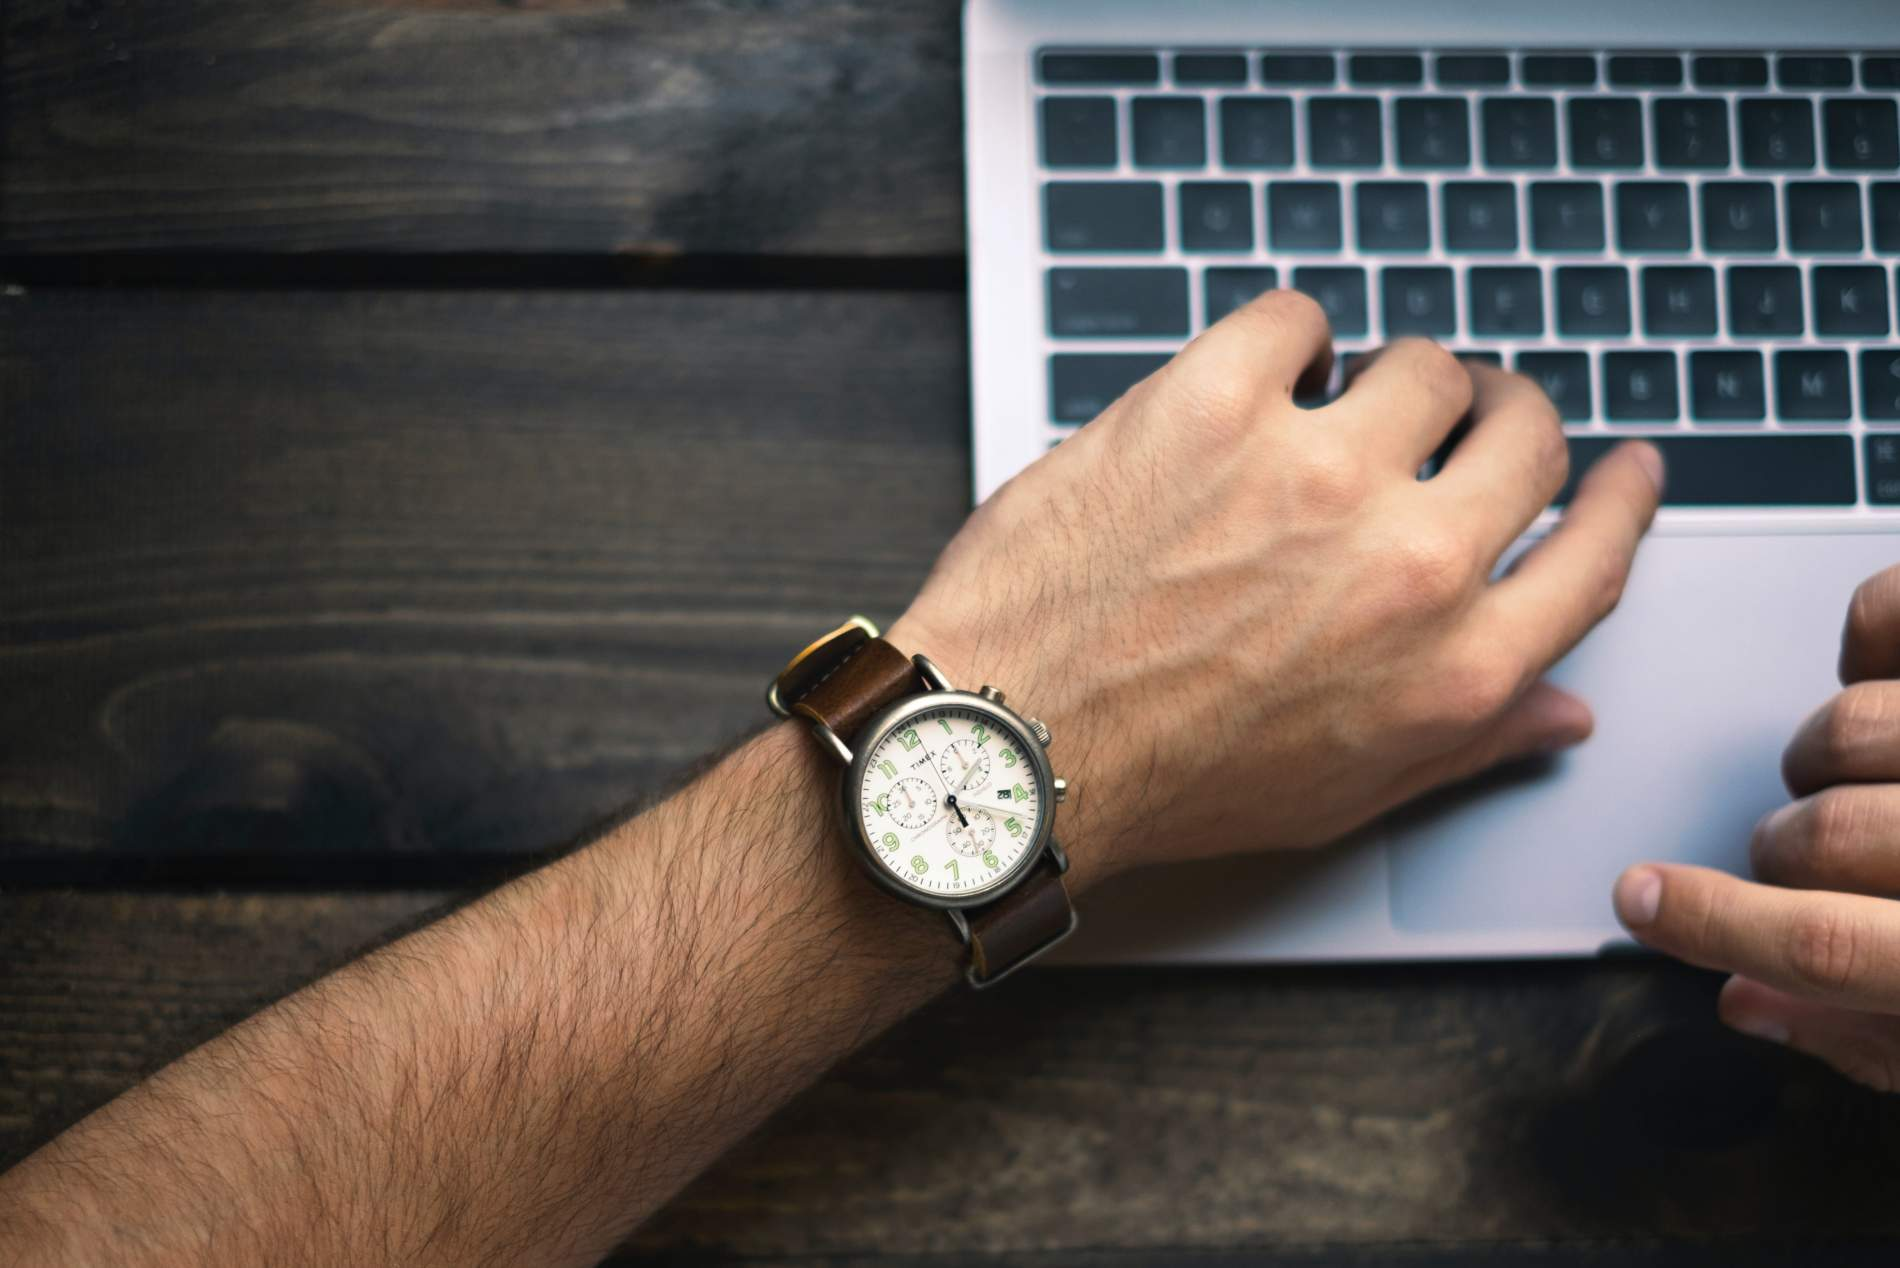 A watch on a man's wrist - illustrating tracking billable hours